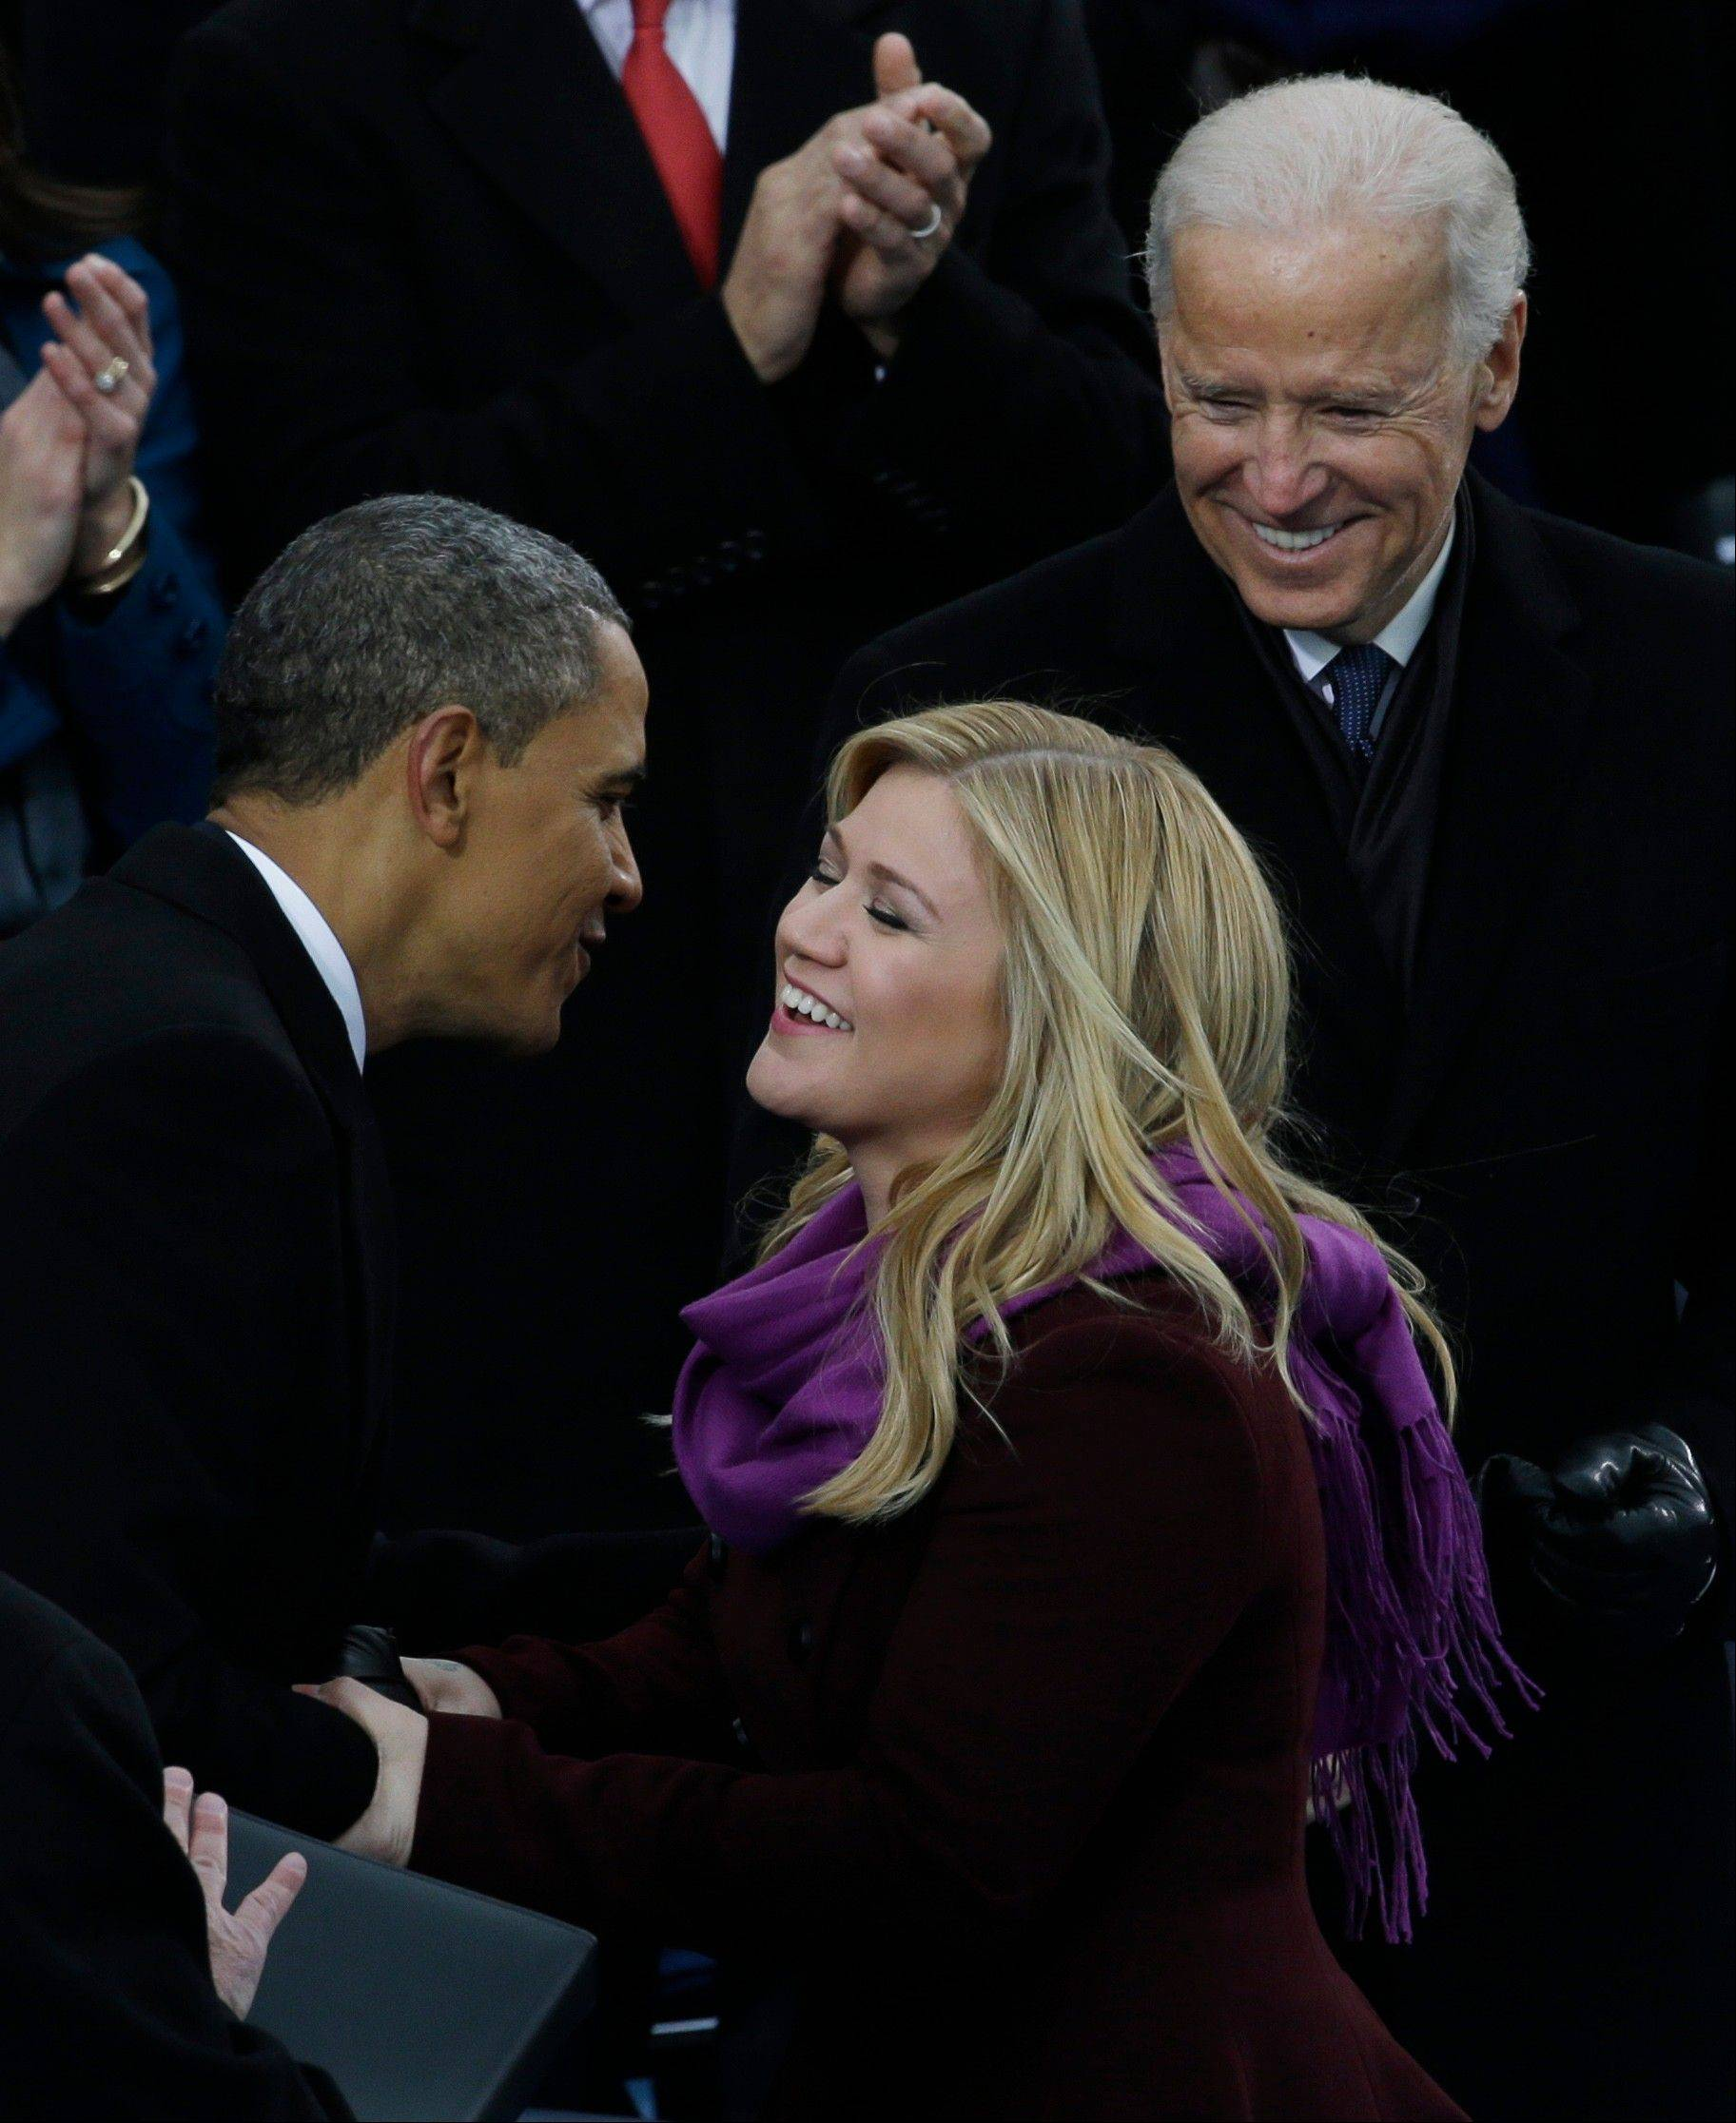 President Barack Obama shakes hands with Kelly Clarkson at the ceremonial swearing-in at the U.S. Capitol during the 57th Presidential Inauguration in Washington, Monday, Jan. 21, 2013.